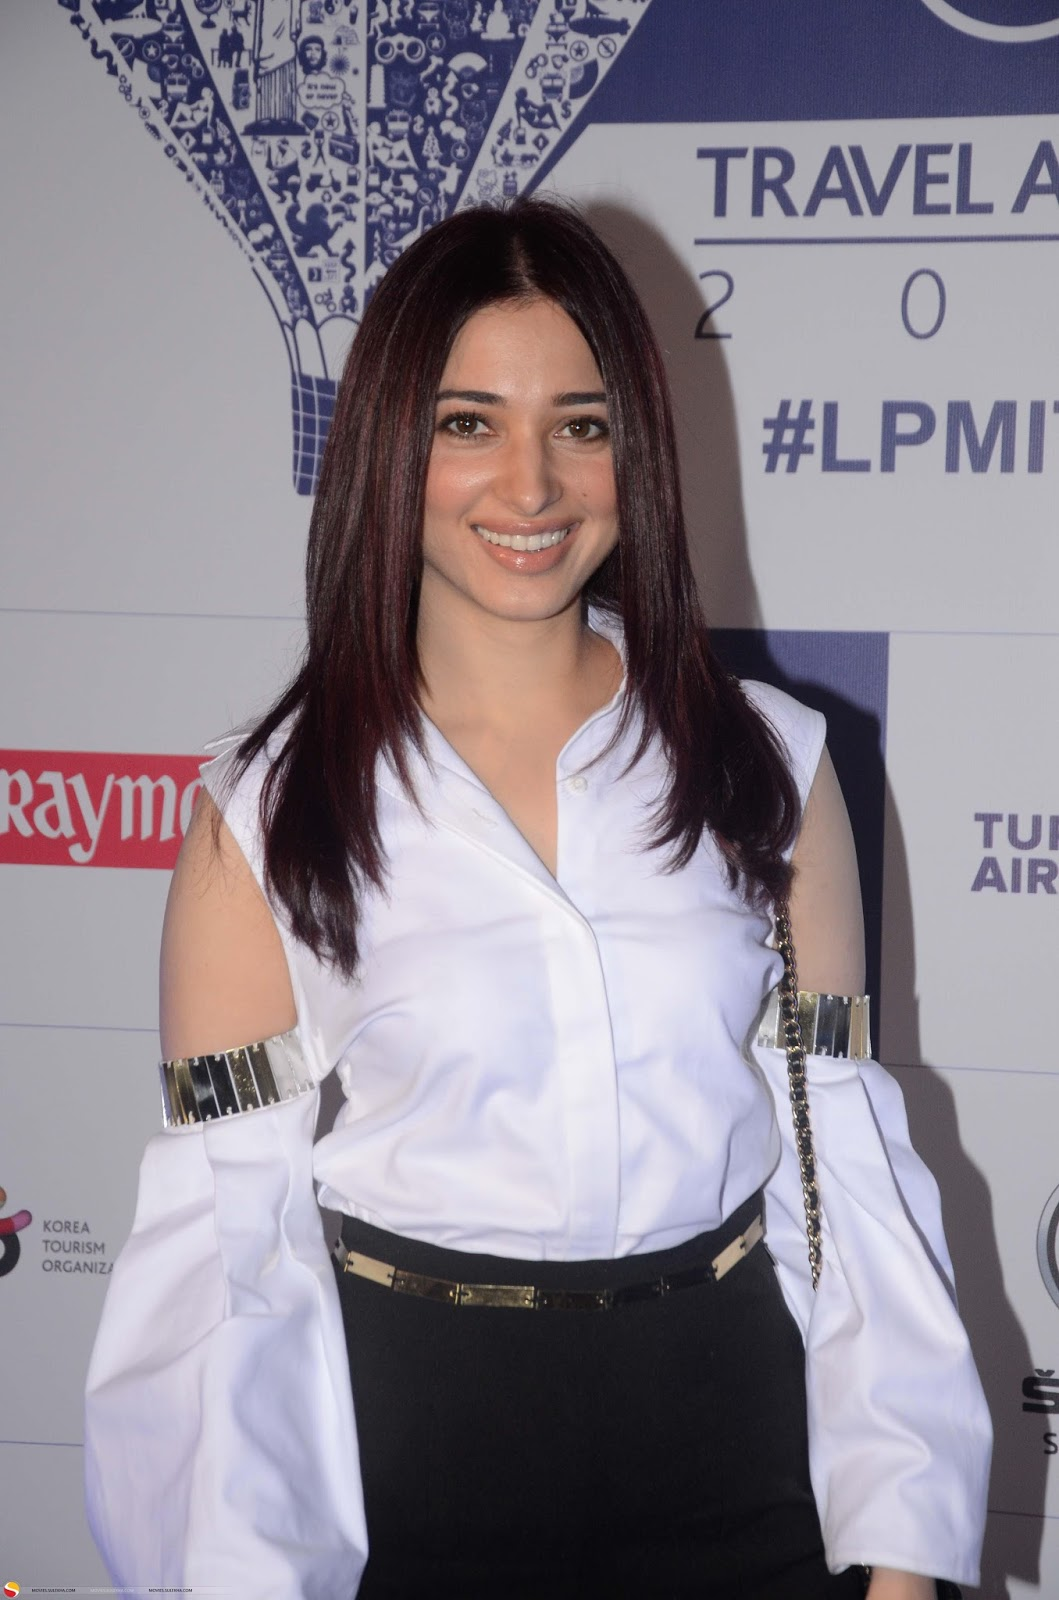 Tamanna At lonely Planet Magazine Awards 2017 In White Shirt